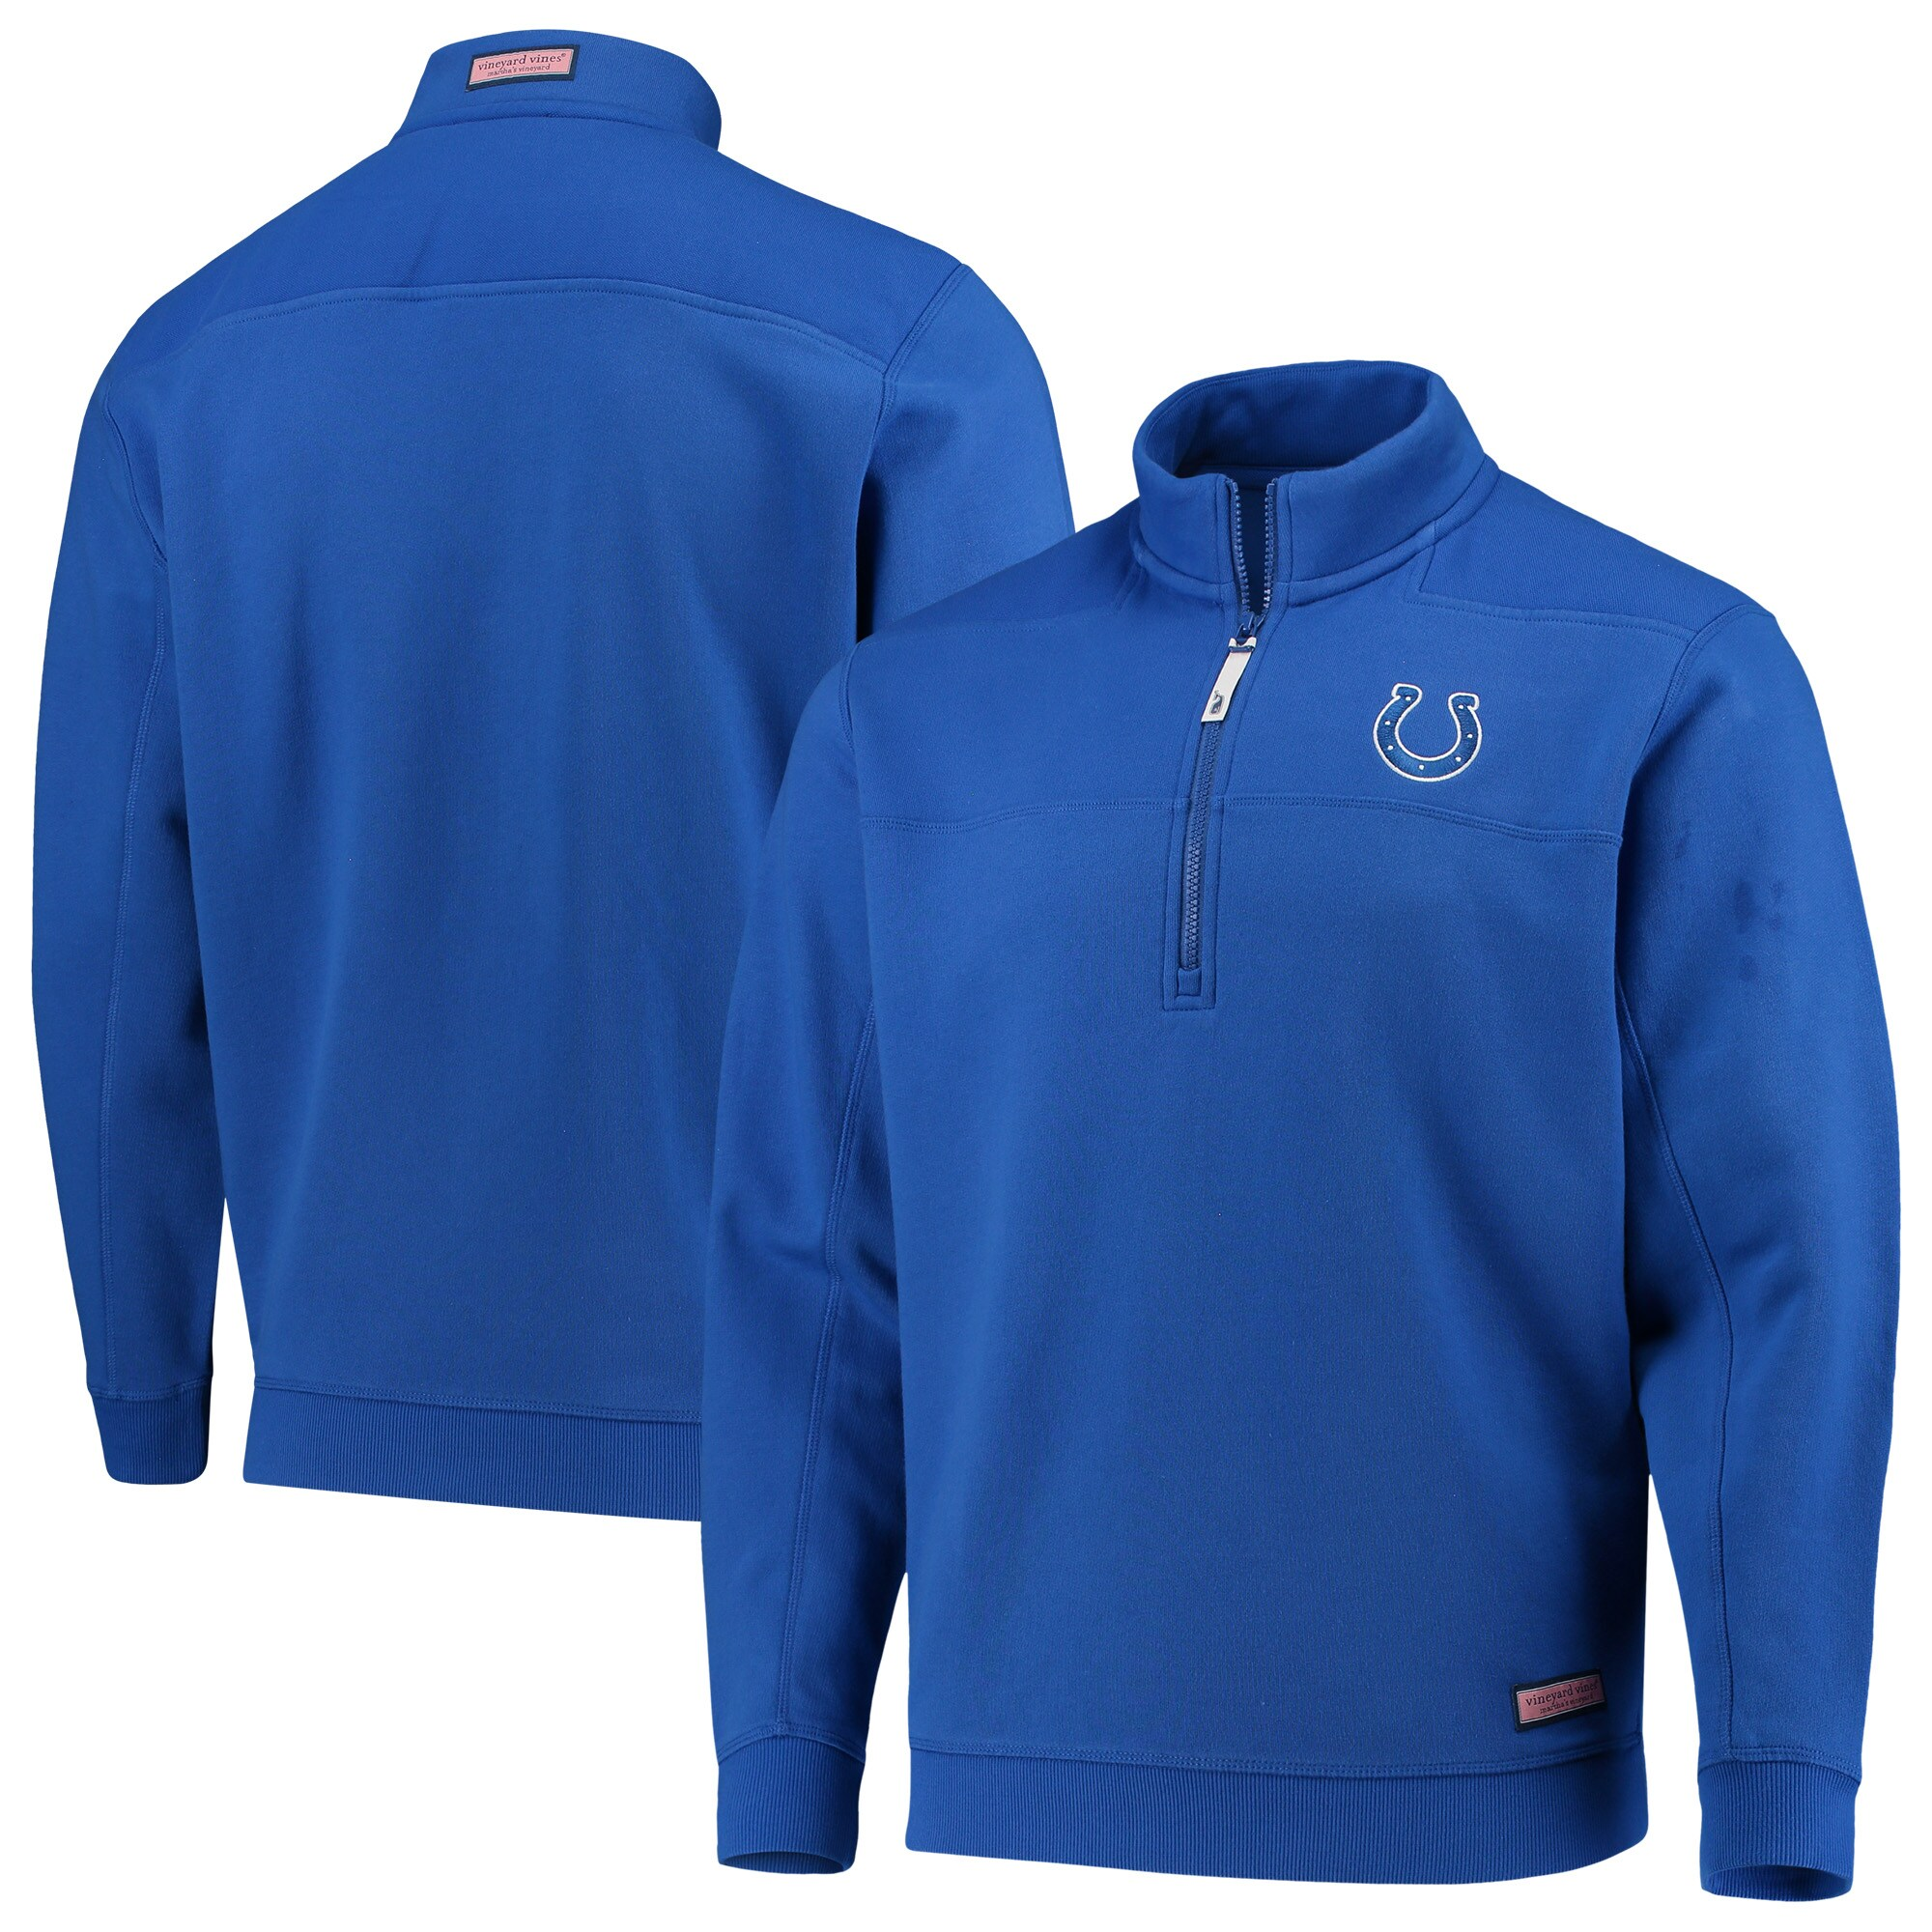 Indianapolis Colts Vineyard Vines Collegiate Shep Shirt Quarter-Zip Pullover Jacket - Royal